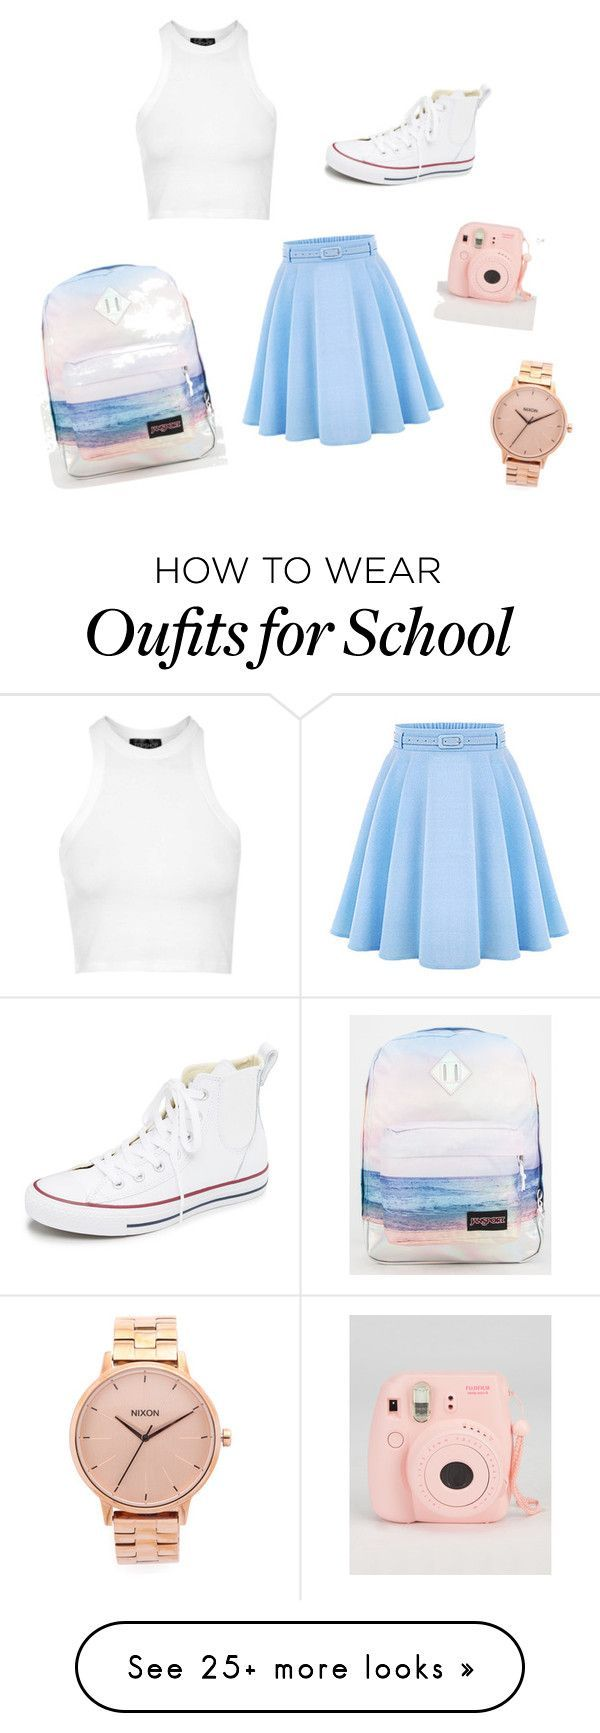 School Outfit♡ by nadinea-573 on Polyvore featuring Topshop, WithChic, Converse, JanSport, Nixon, women's clothing, women's fashion, women, female and woman So Cheap!! Check it out!! Only $21!